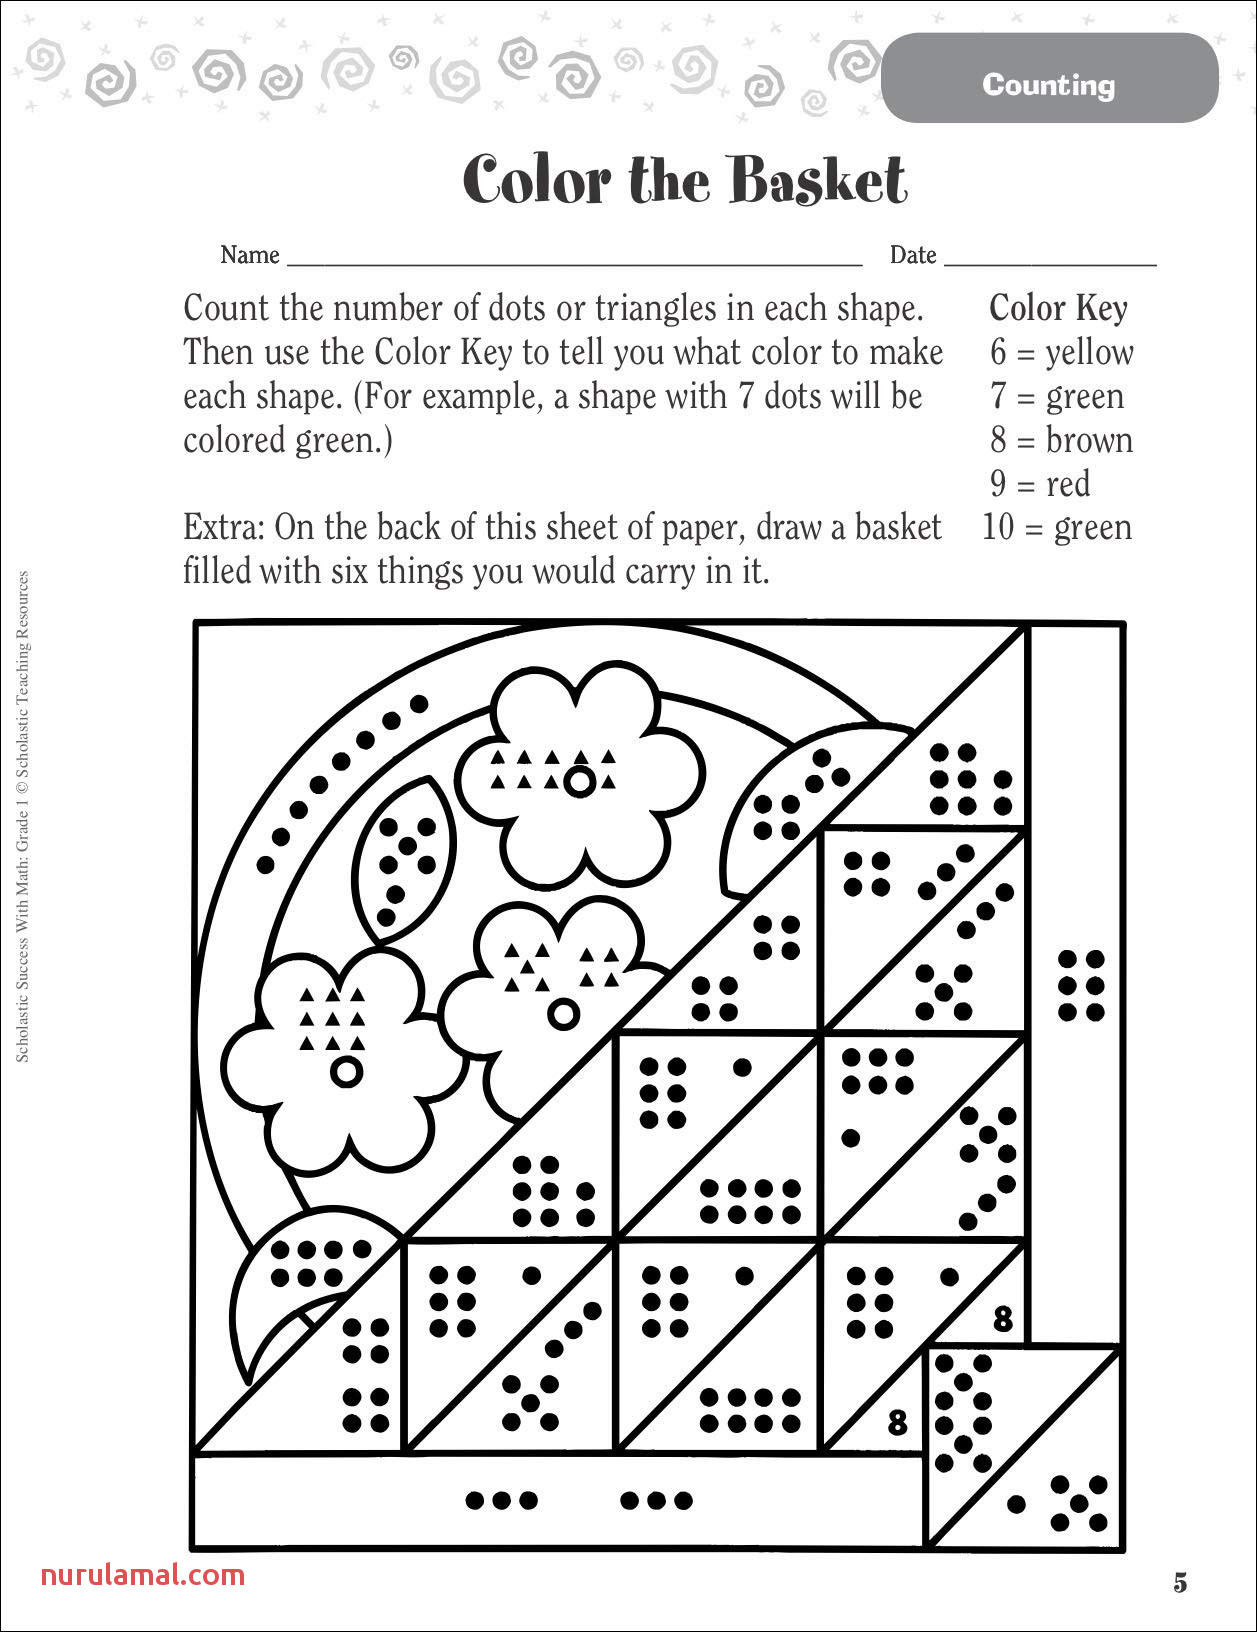 readingrskheets exercises for esl students segment outstanding prehension grade printables solving linear equations and inequalities